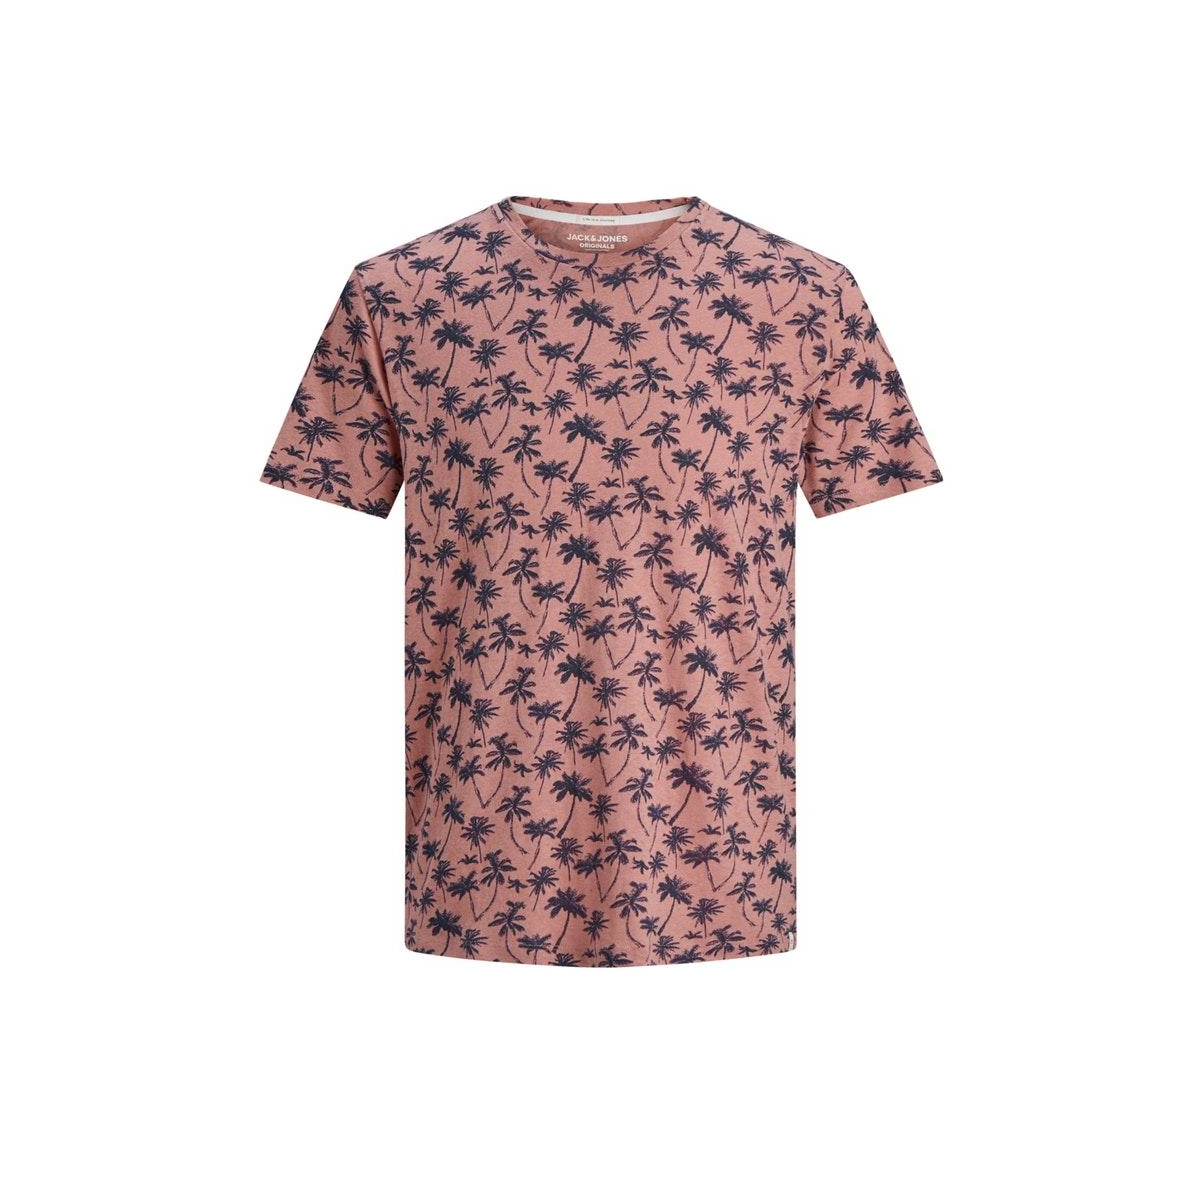 jorlino aop tee ss crew neck 12171692 jack & jones t-shirt rosette/slim